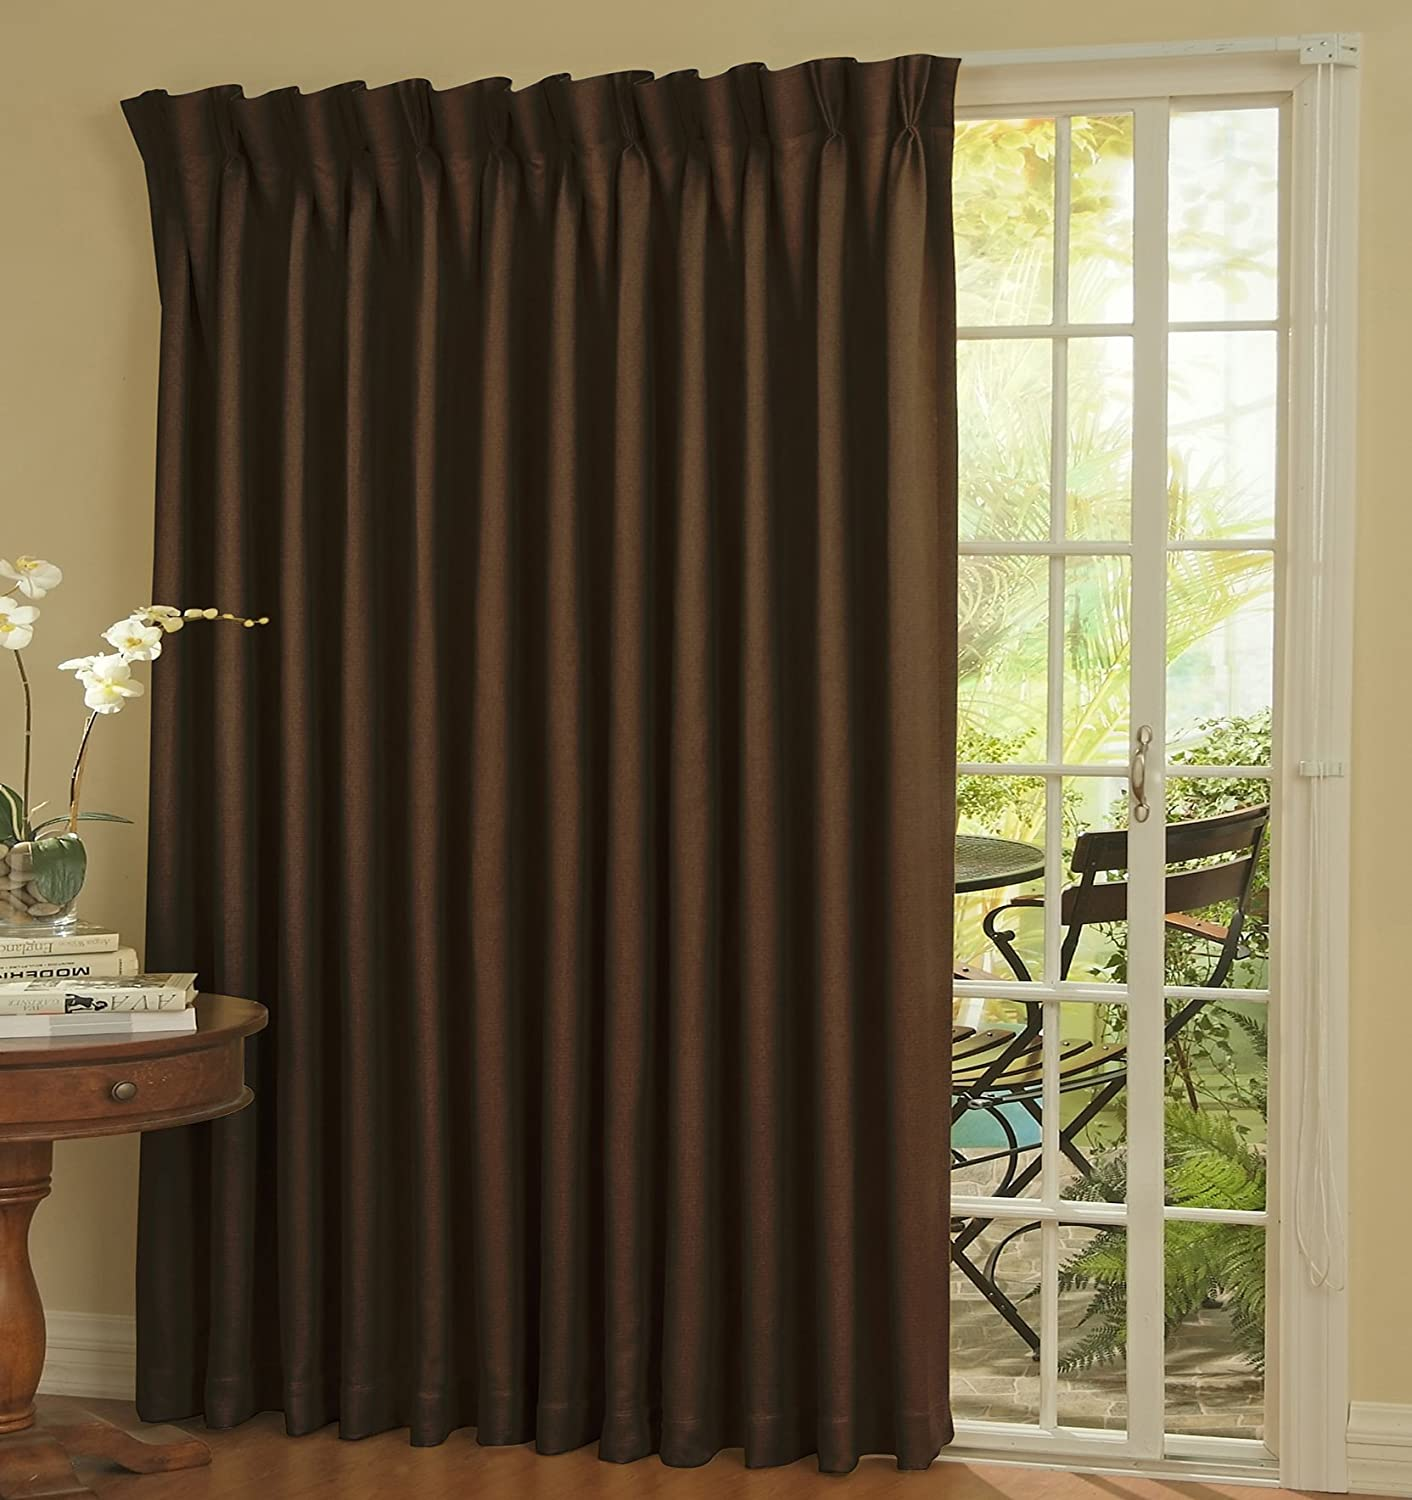 Amazon.com: Eclipse Thermal Blackout Patio Door Curtain Panel, 100